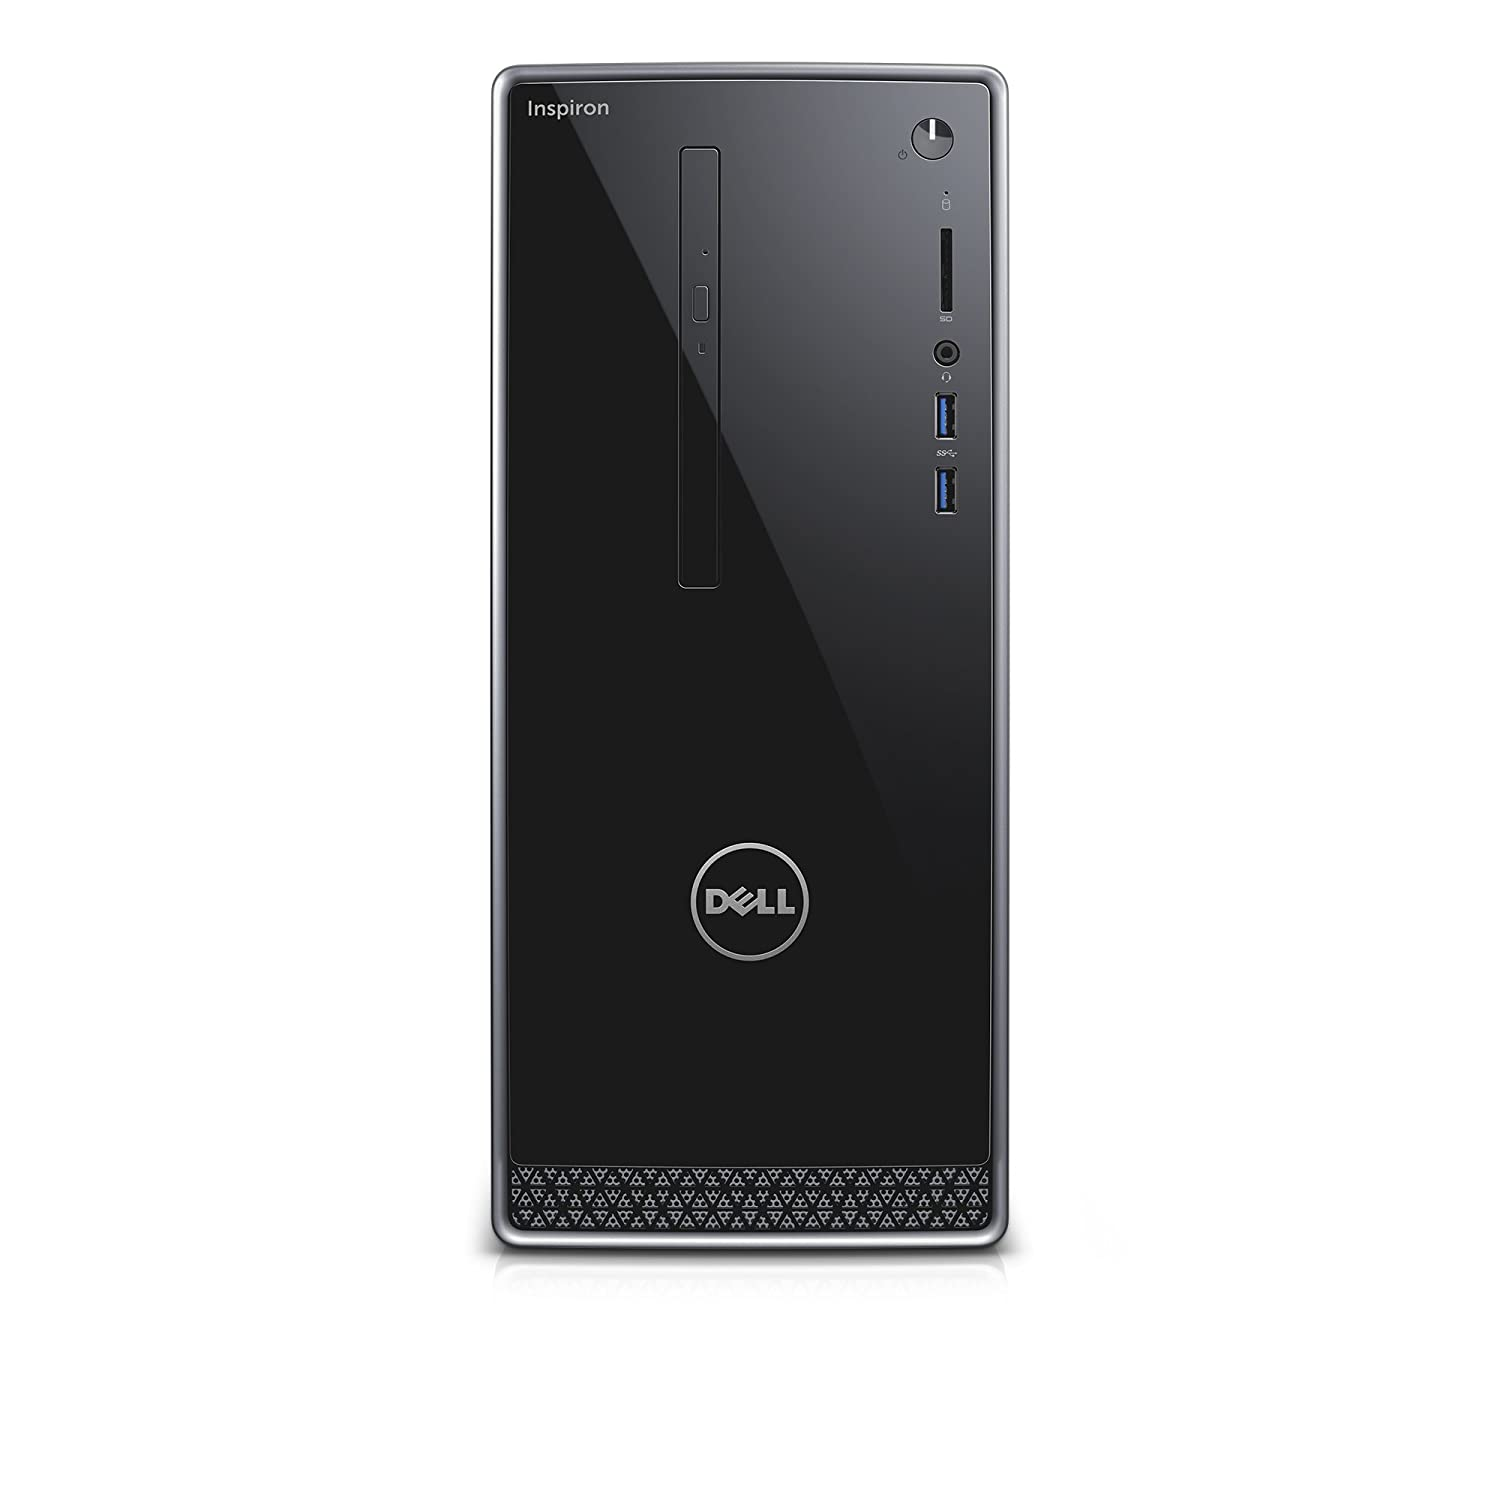 Dell | Inspiron i3650-1551SLV Desktop | Intel Core i3, 8 GB RAM, 1 TB HDD, Silver | No Monitor Included